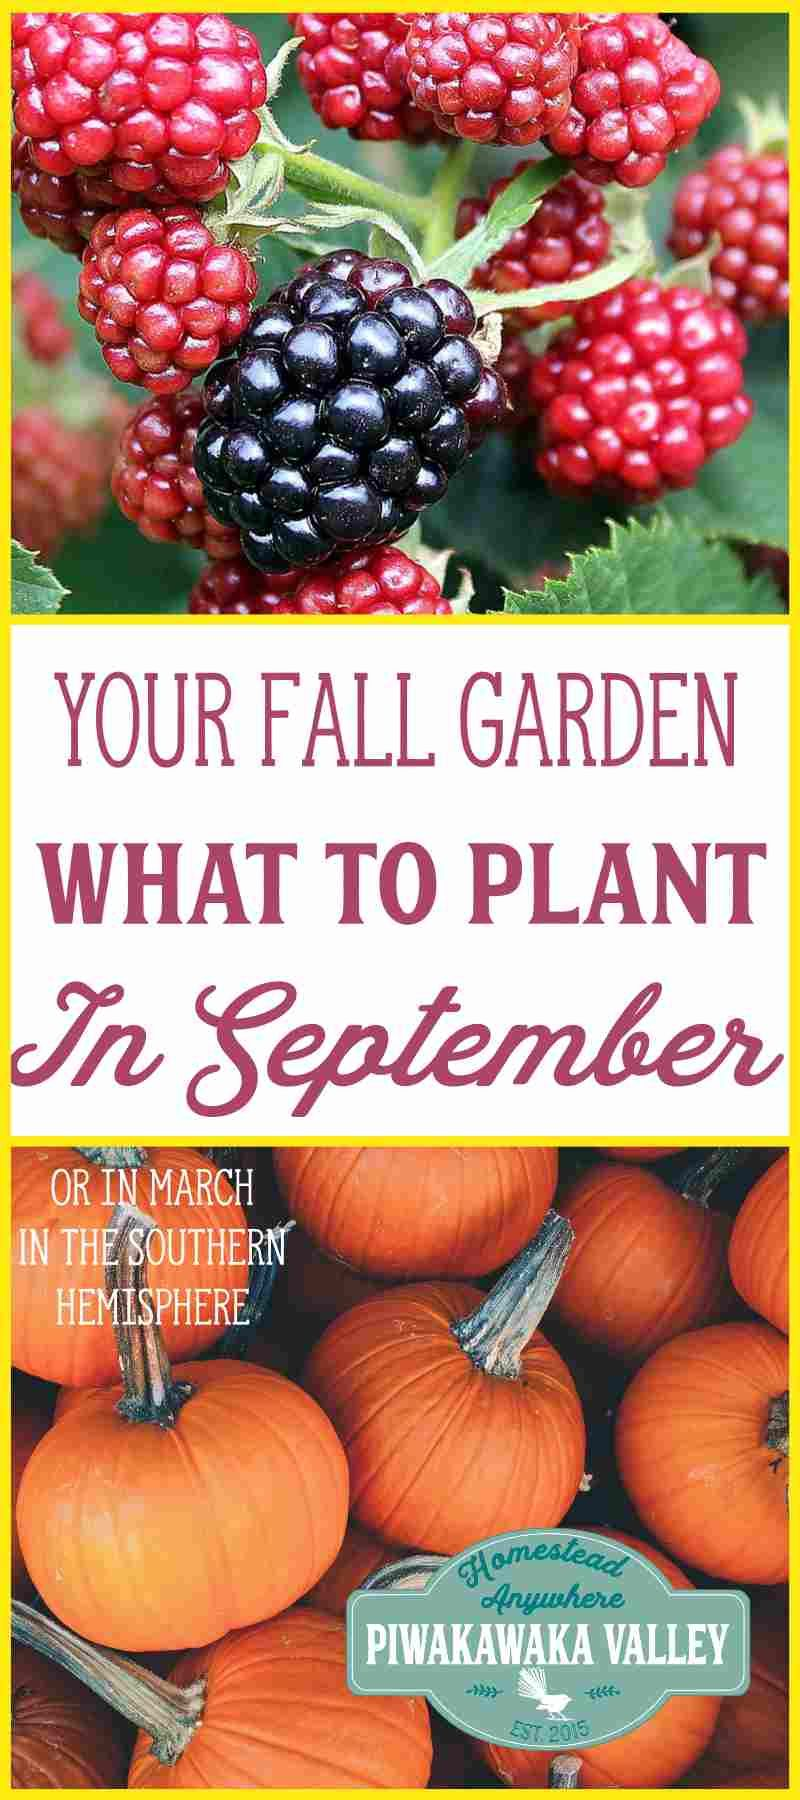 What to plant in your Fall vegetable garden in September (or March)